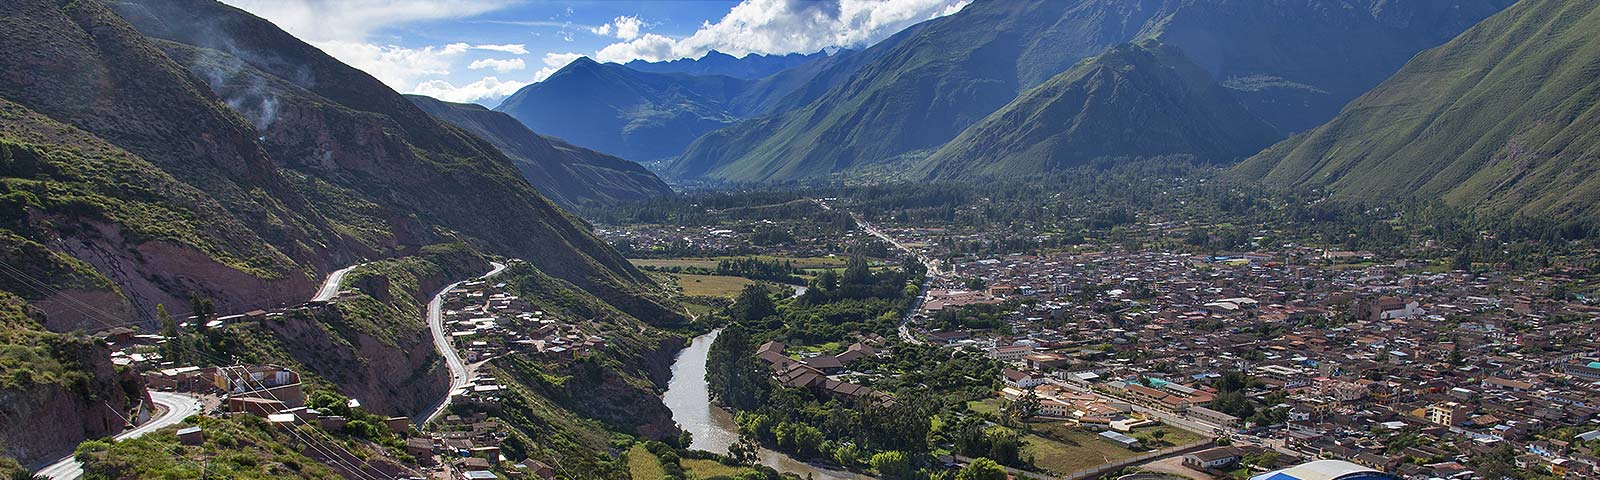 Information about Urubamba